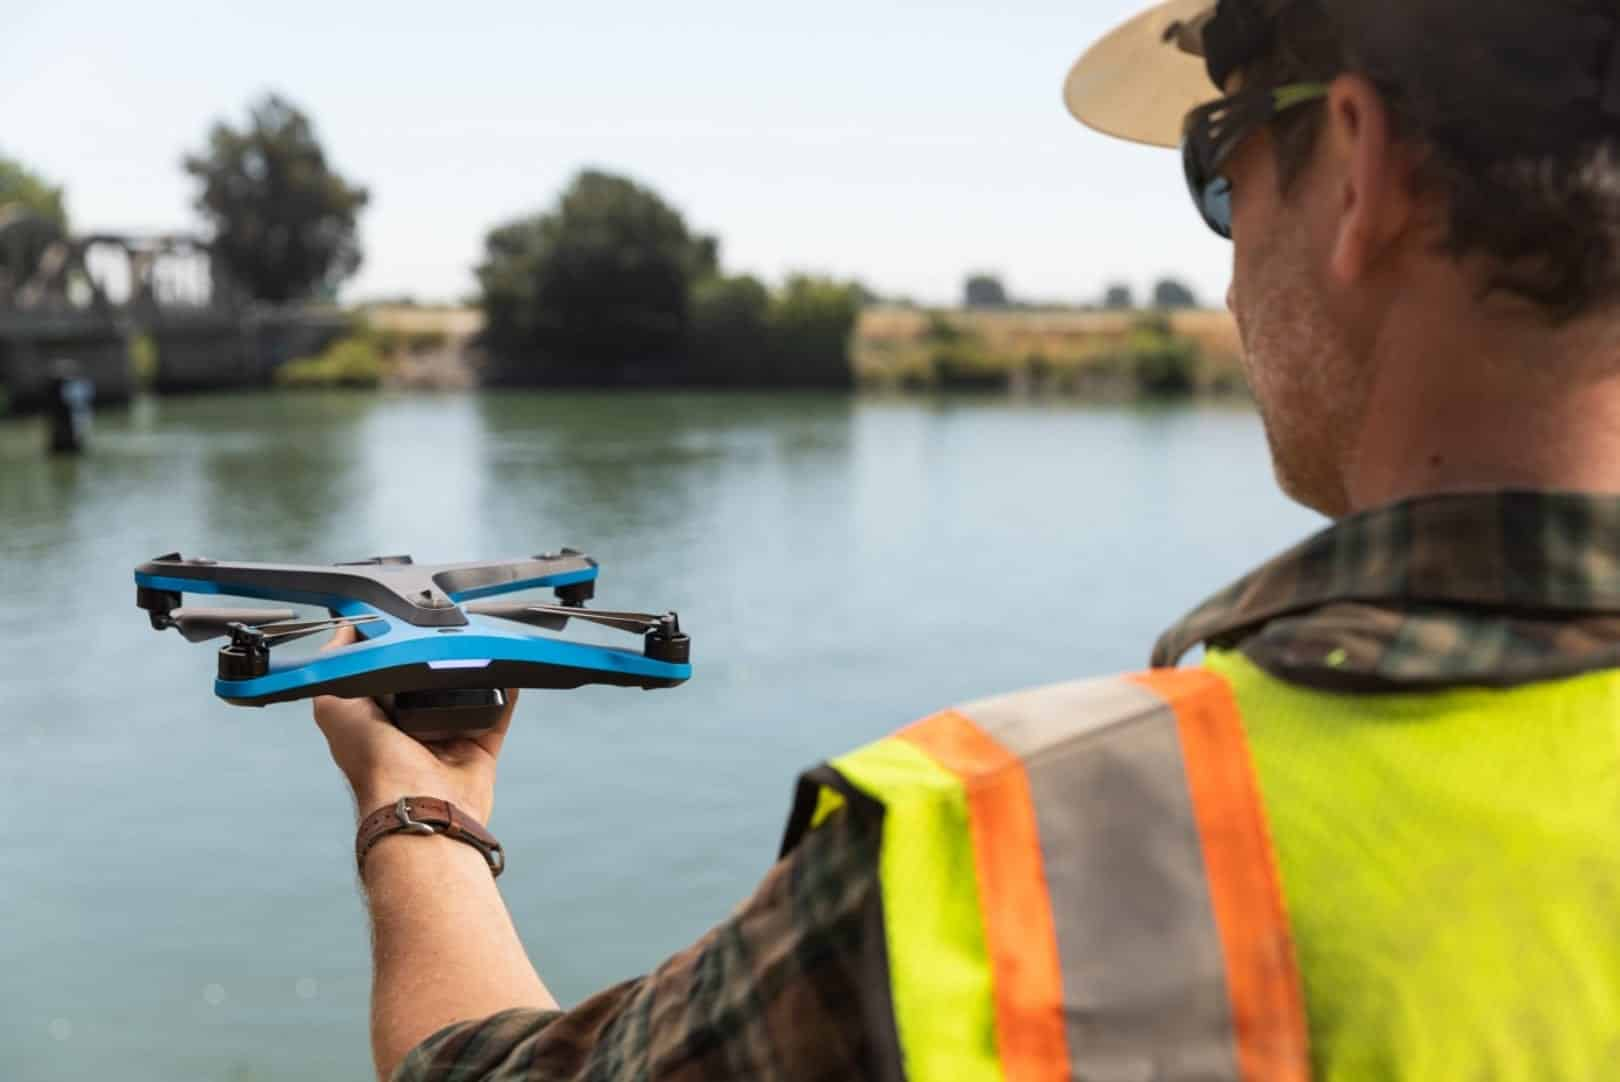 FAA grants NSDOT waiver to fly Skydio drones BVLOS during inspections